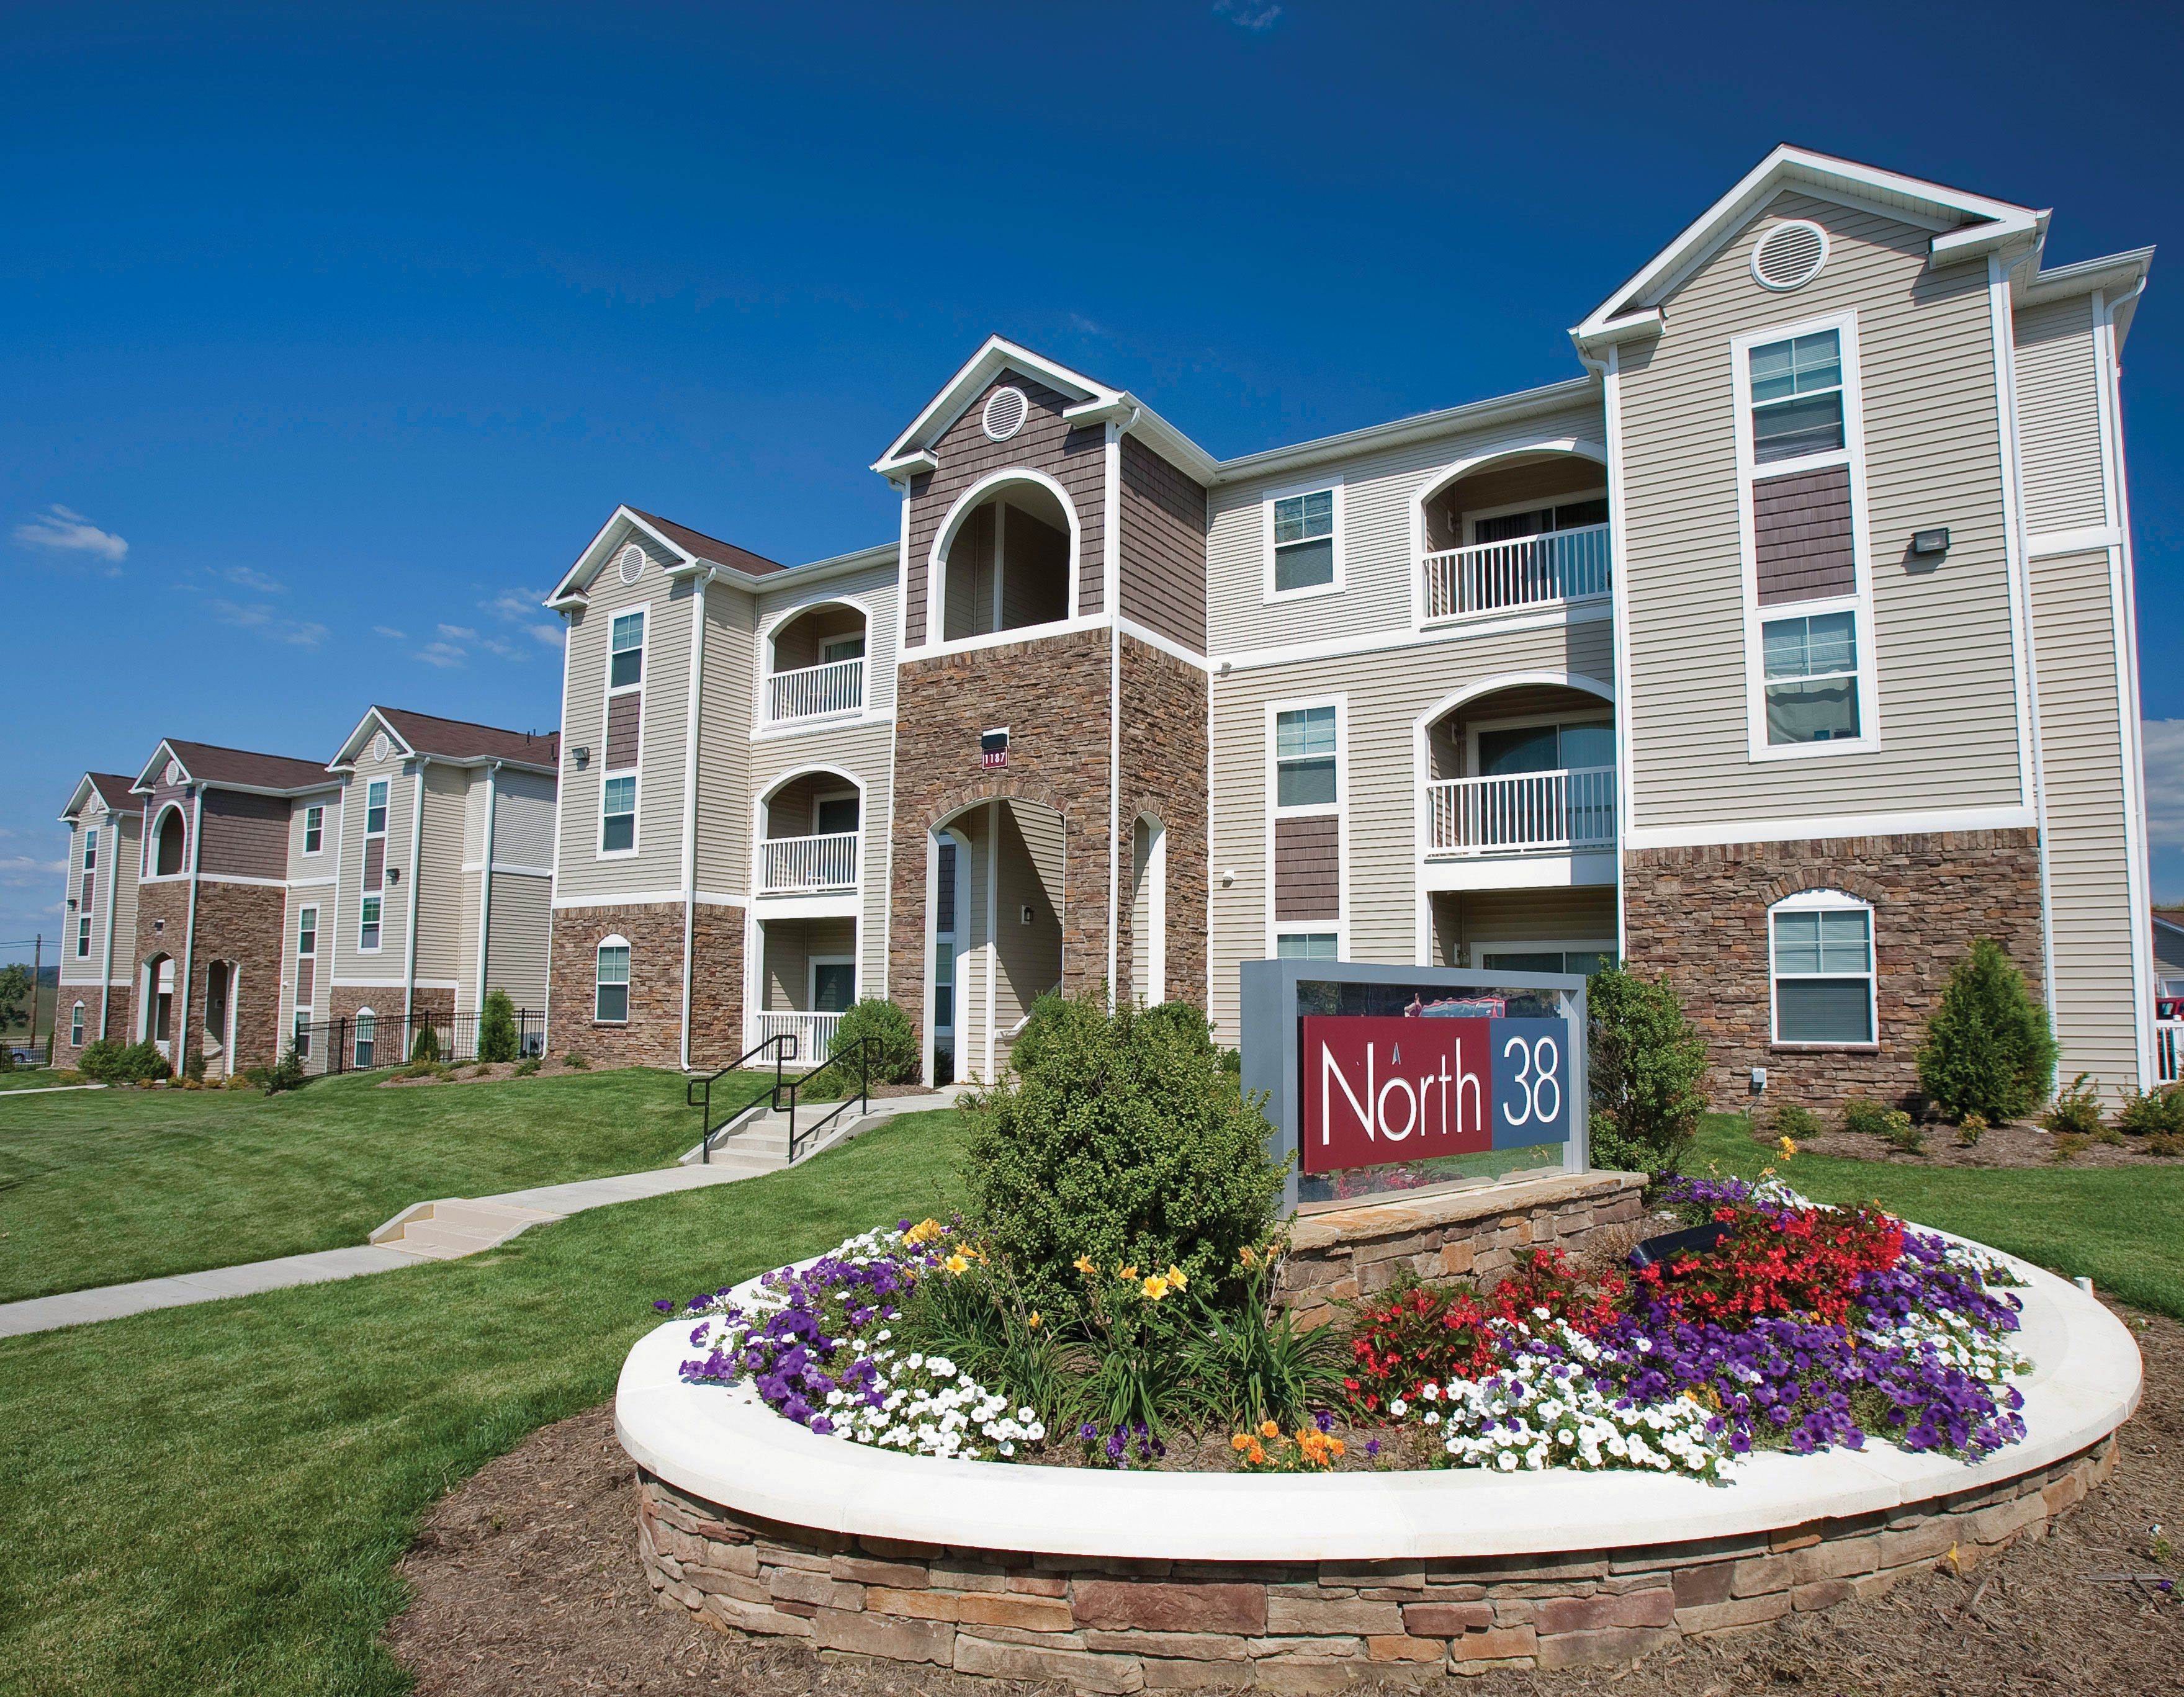 Apartment buildings at North 38 deliver stylish curb appeal. http://www.north38apts.com/